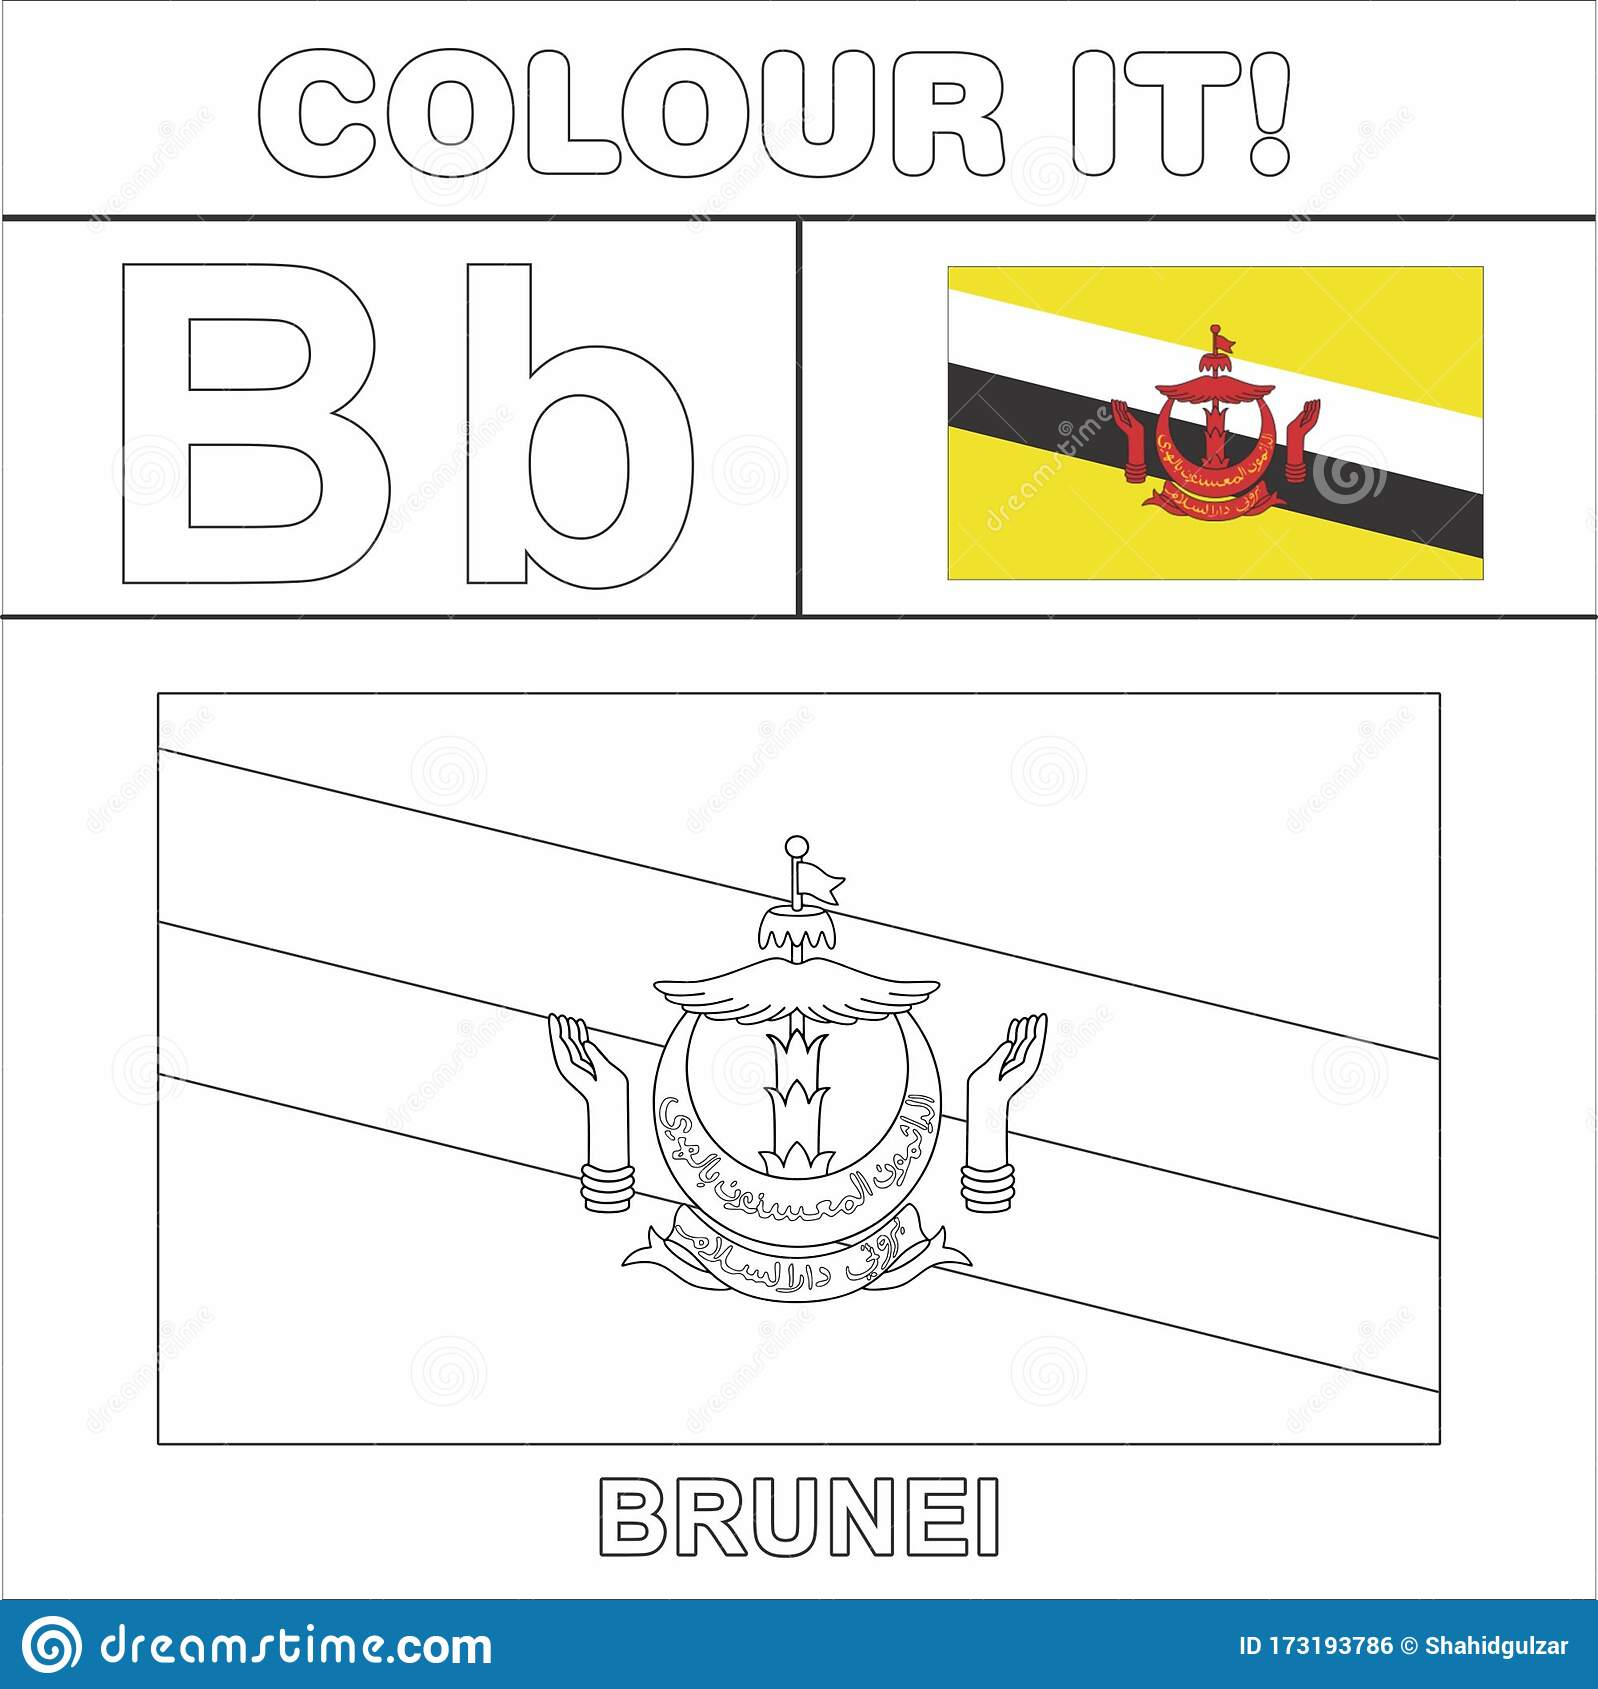 Colour It Kids Colouring Page Country Starting From English Letter B Brunei How To Color Flag Stock Illustration Illustration Of Line Colouring 173193786